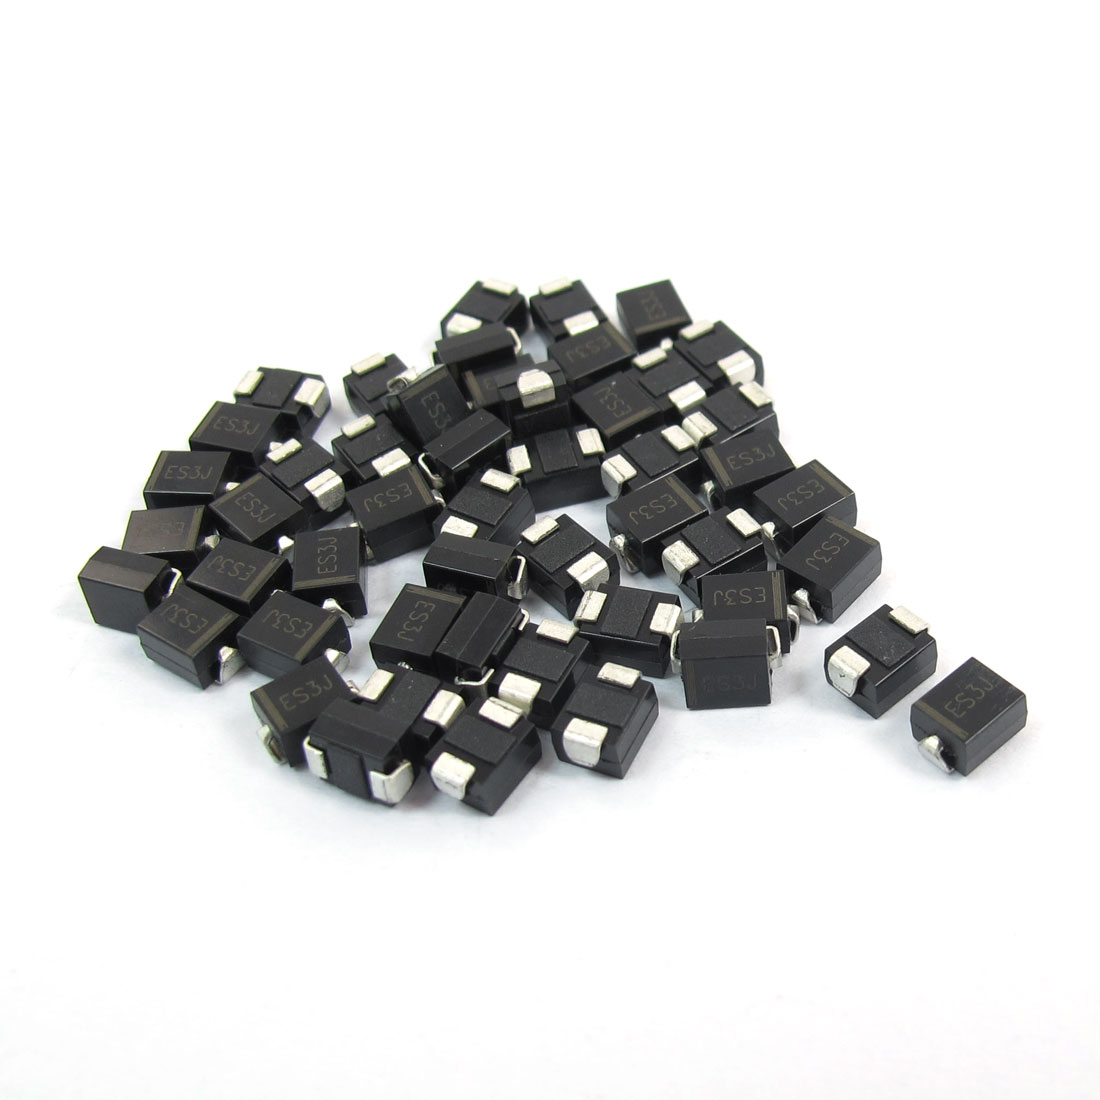 Electric SMD DO-214AA 600V 3A Ultra Fast Rectifier Diode ES3J 50pcs